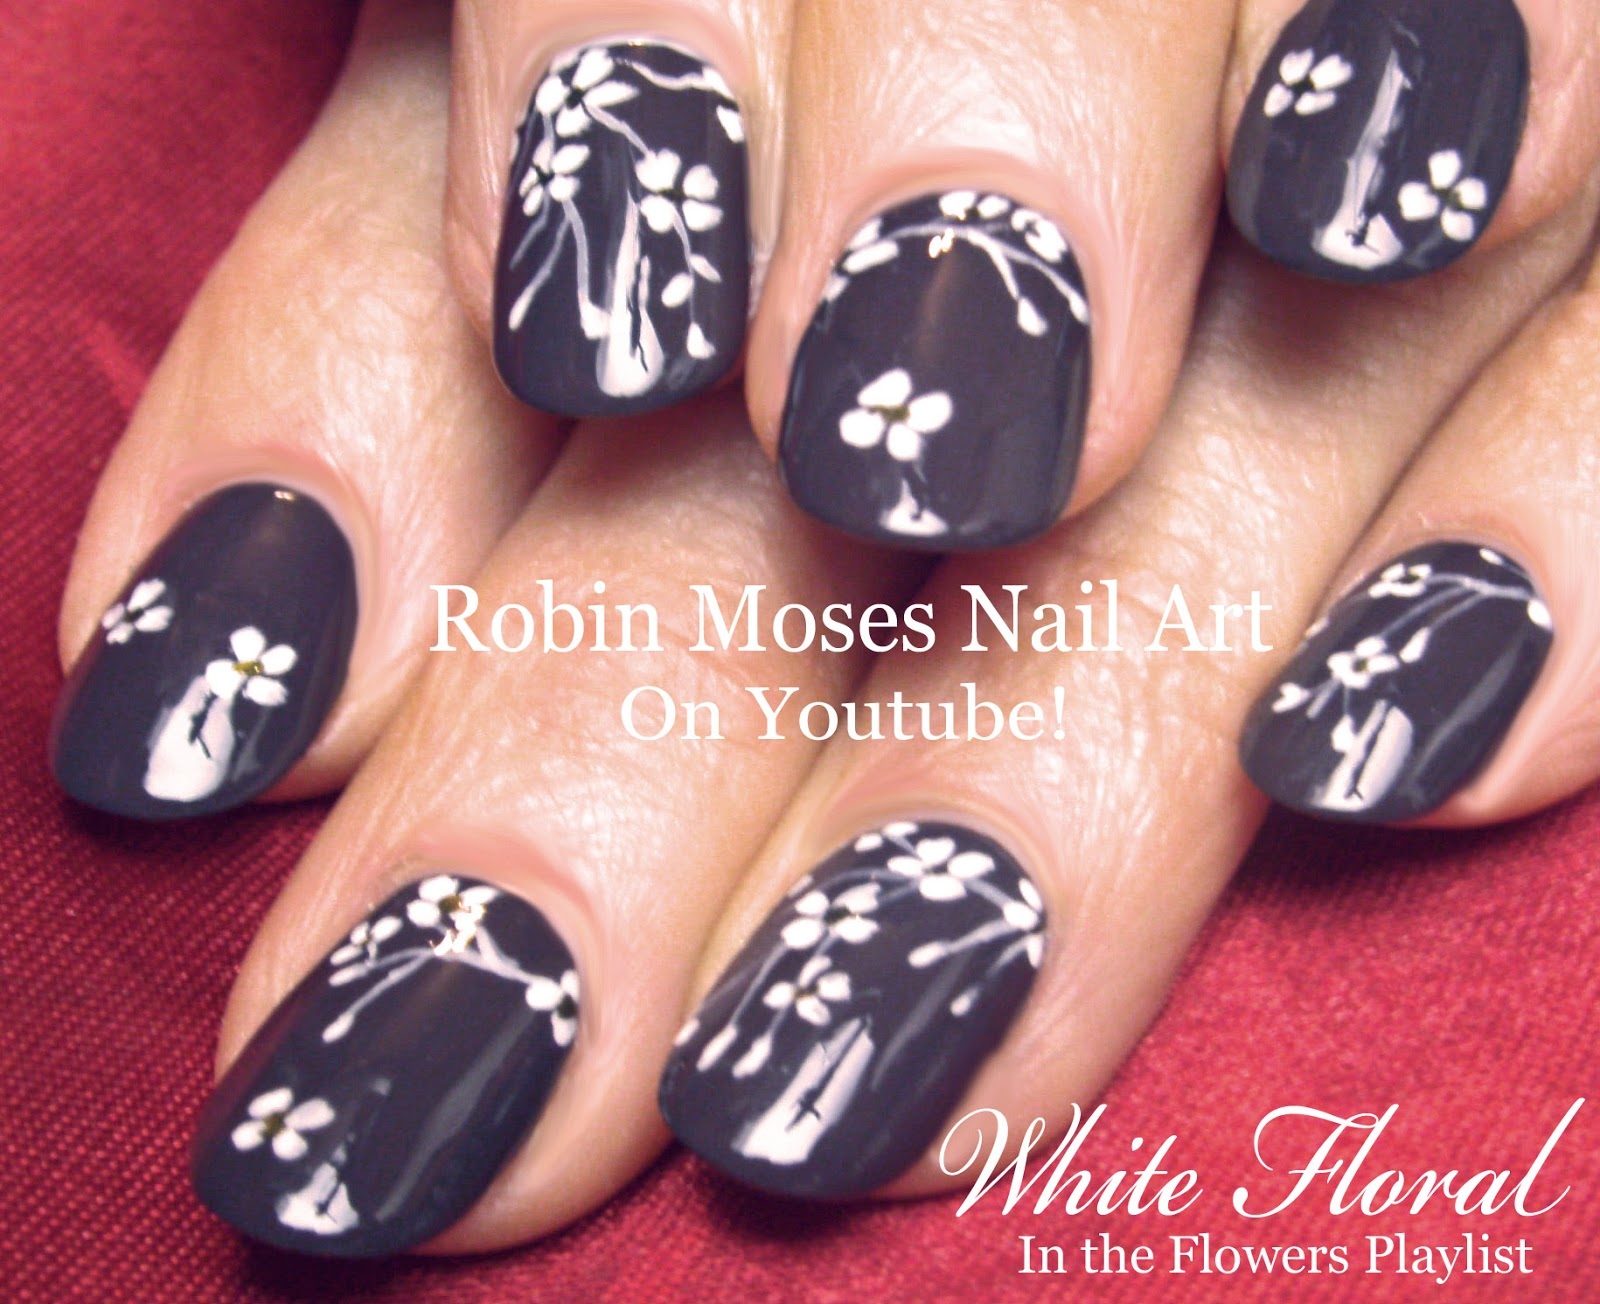 Robin moses nail art nail art with cherry blossoms in white on nail art with cherry blossoms in white on taupe cherry blossom cherry blossom nails white flower nails white flowers cherry blossom design taupe prinsesfo Image collections